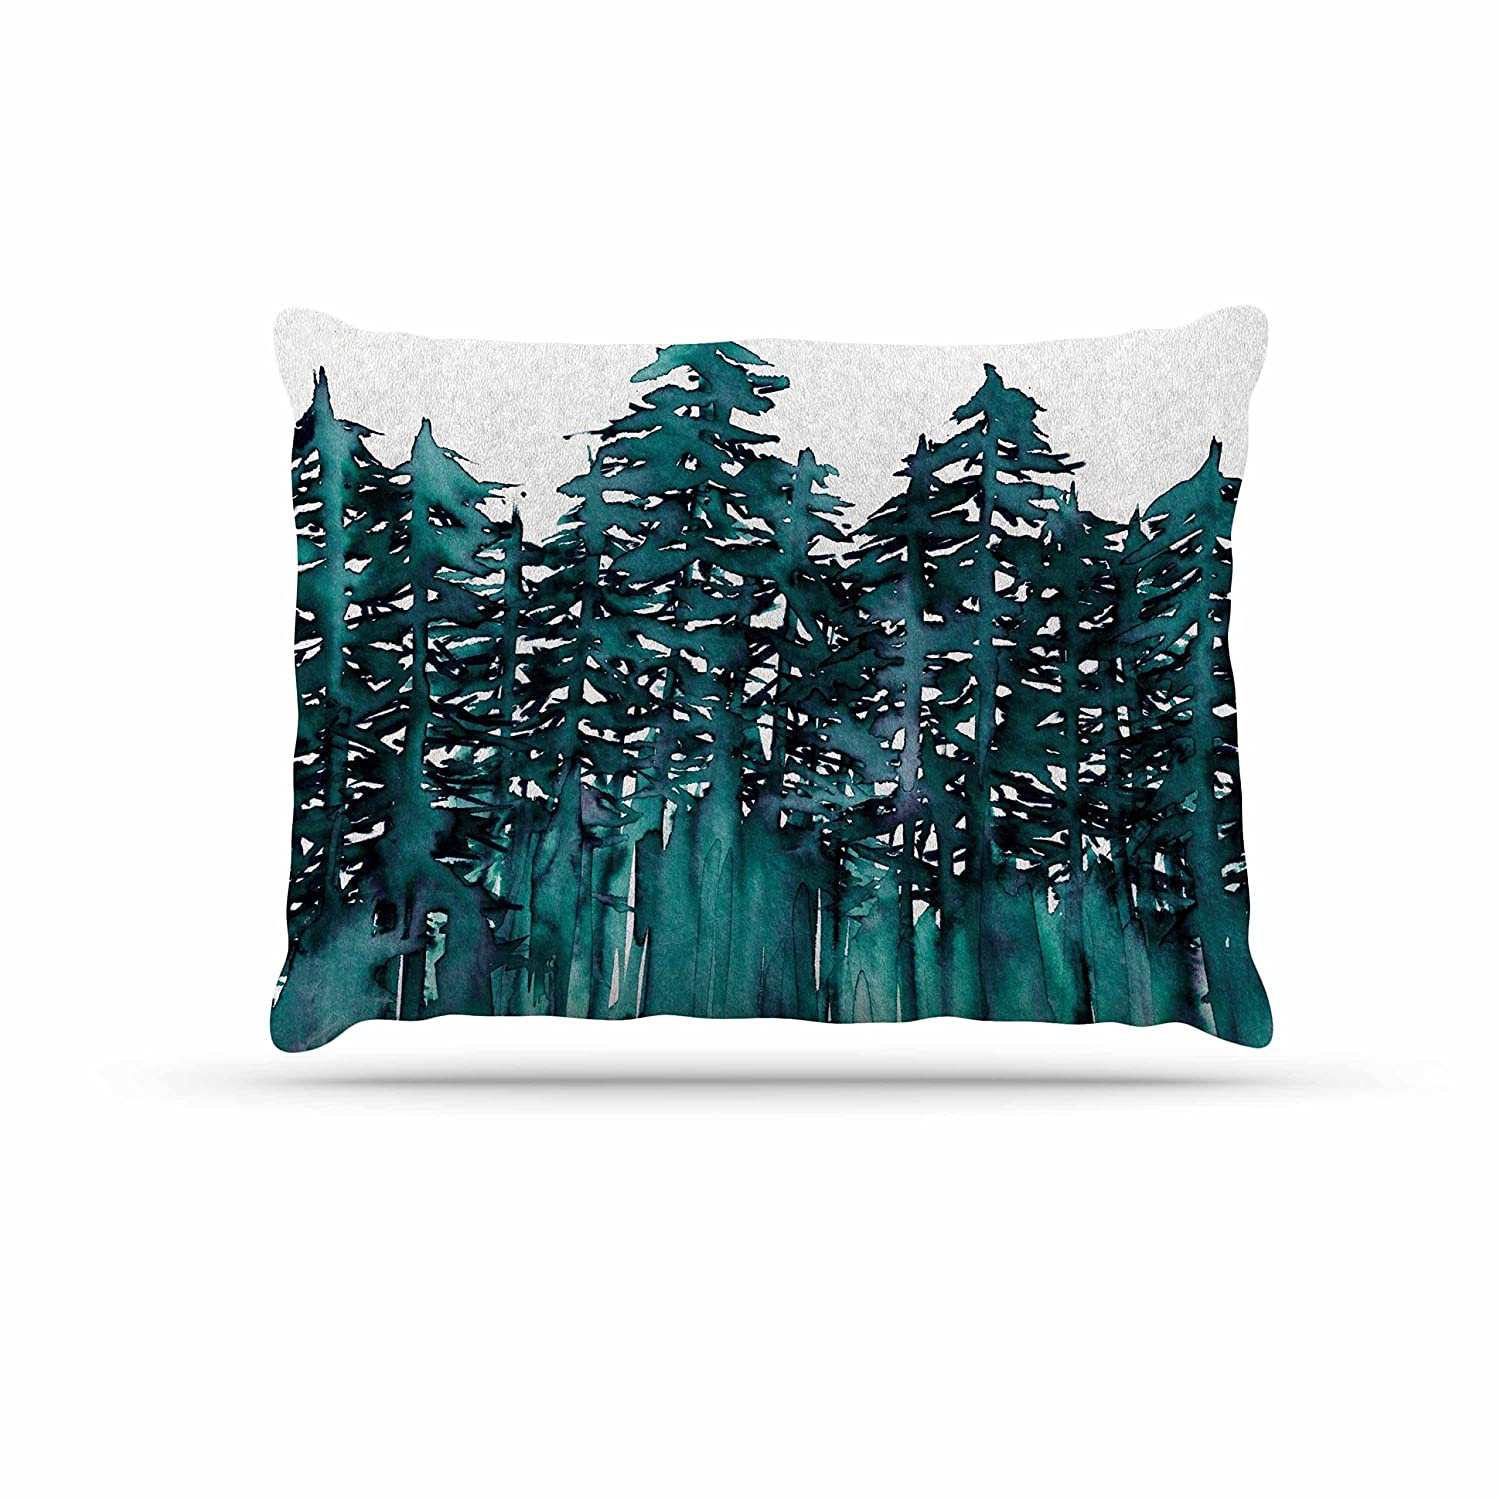 KESS InHouse EBI Emporium Forest Through The Trees 5  Teal White Dog Bed, 50  x 40